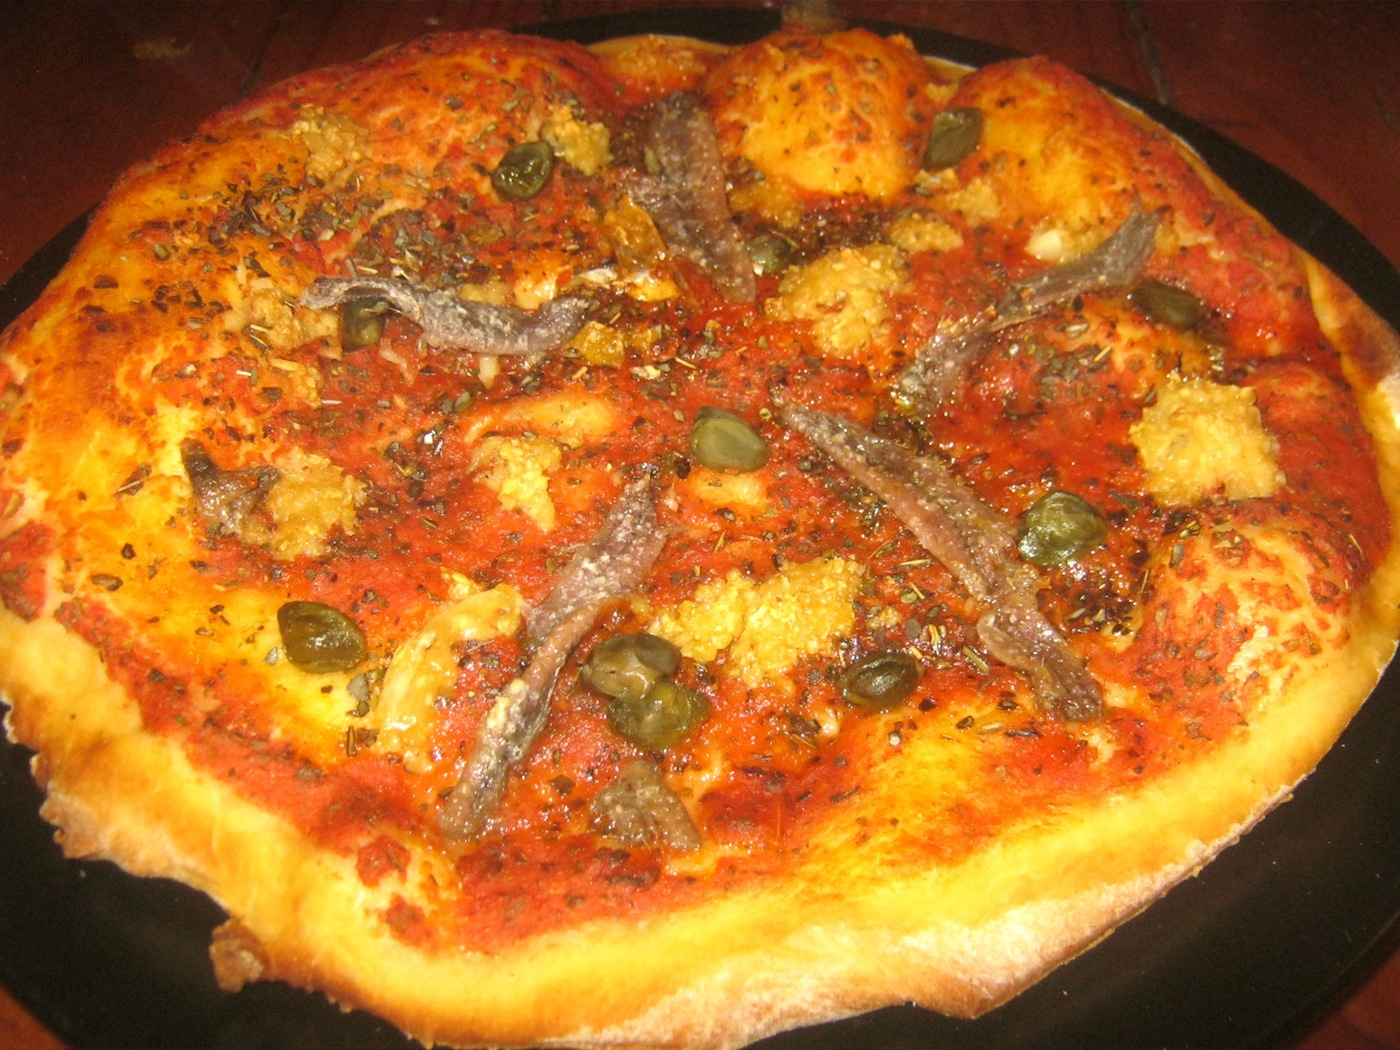 Pizza Marinara another Neapolitan classic.